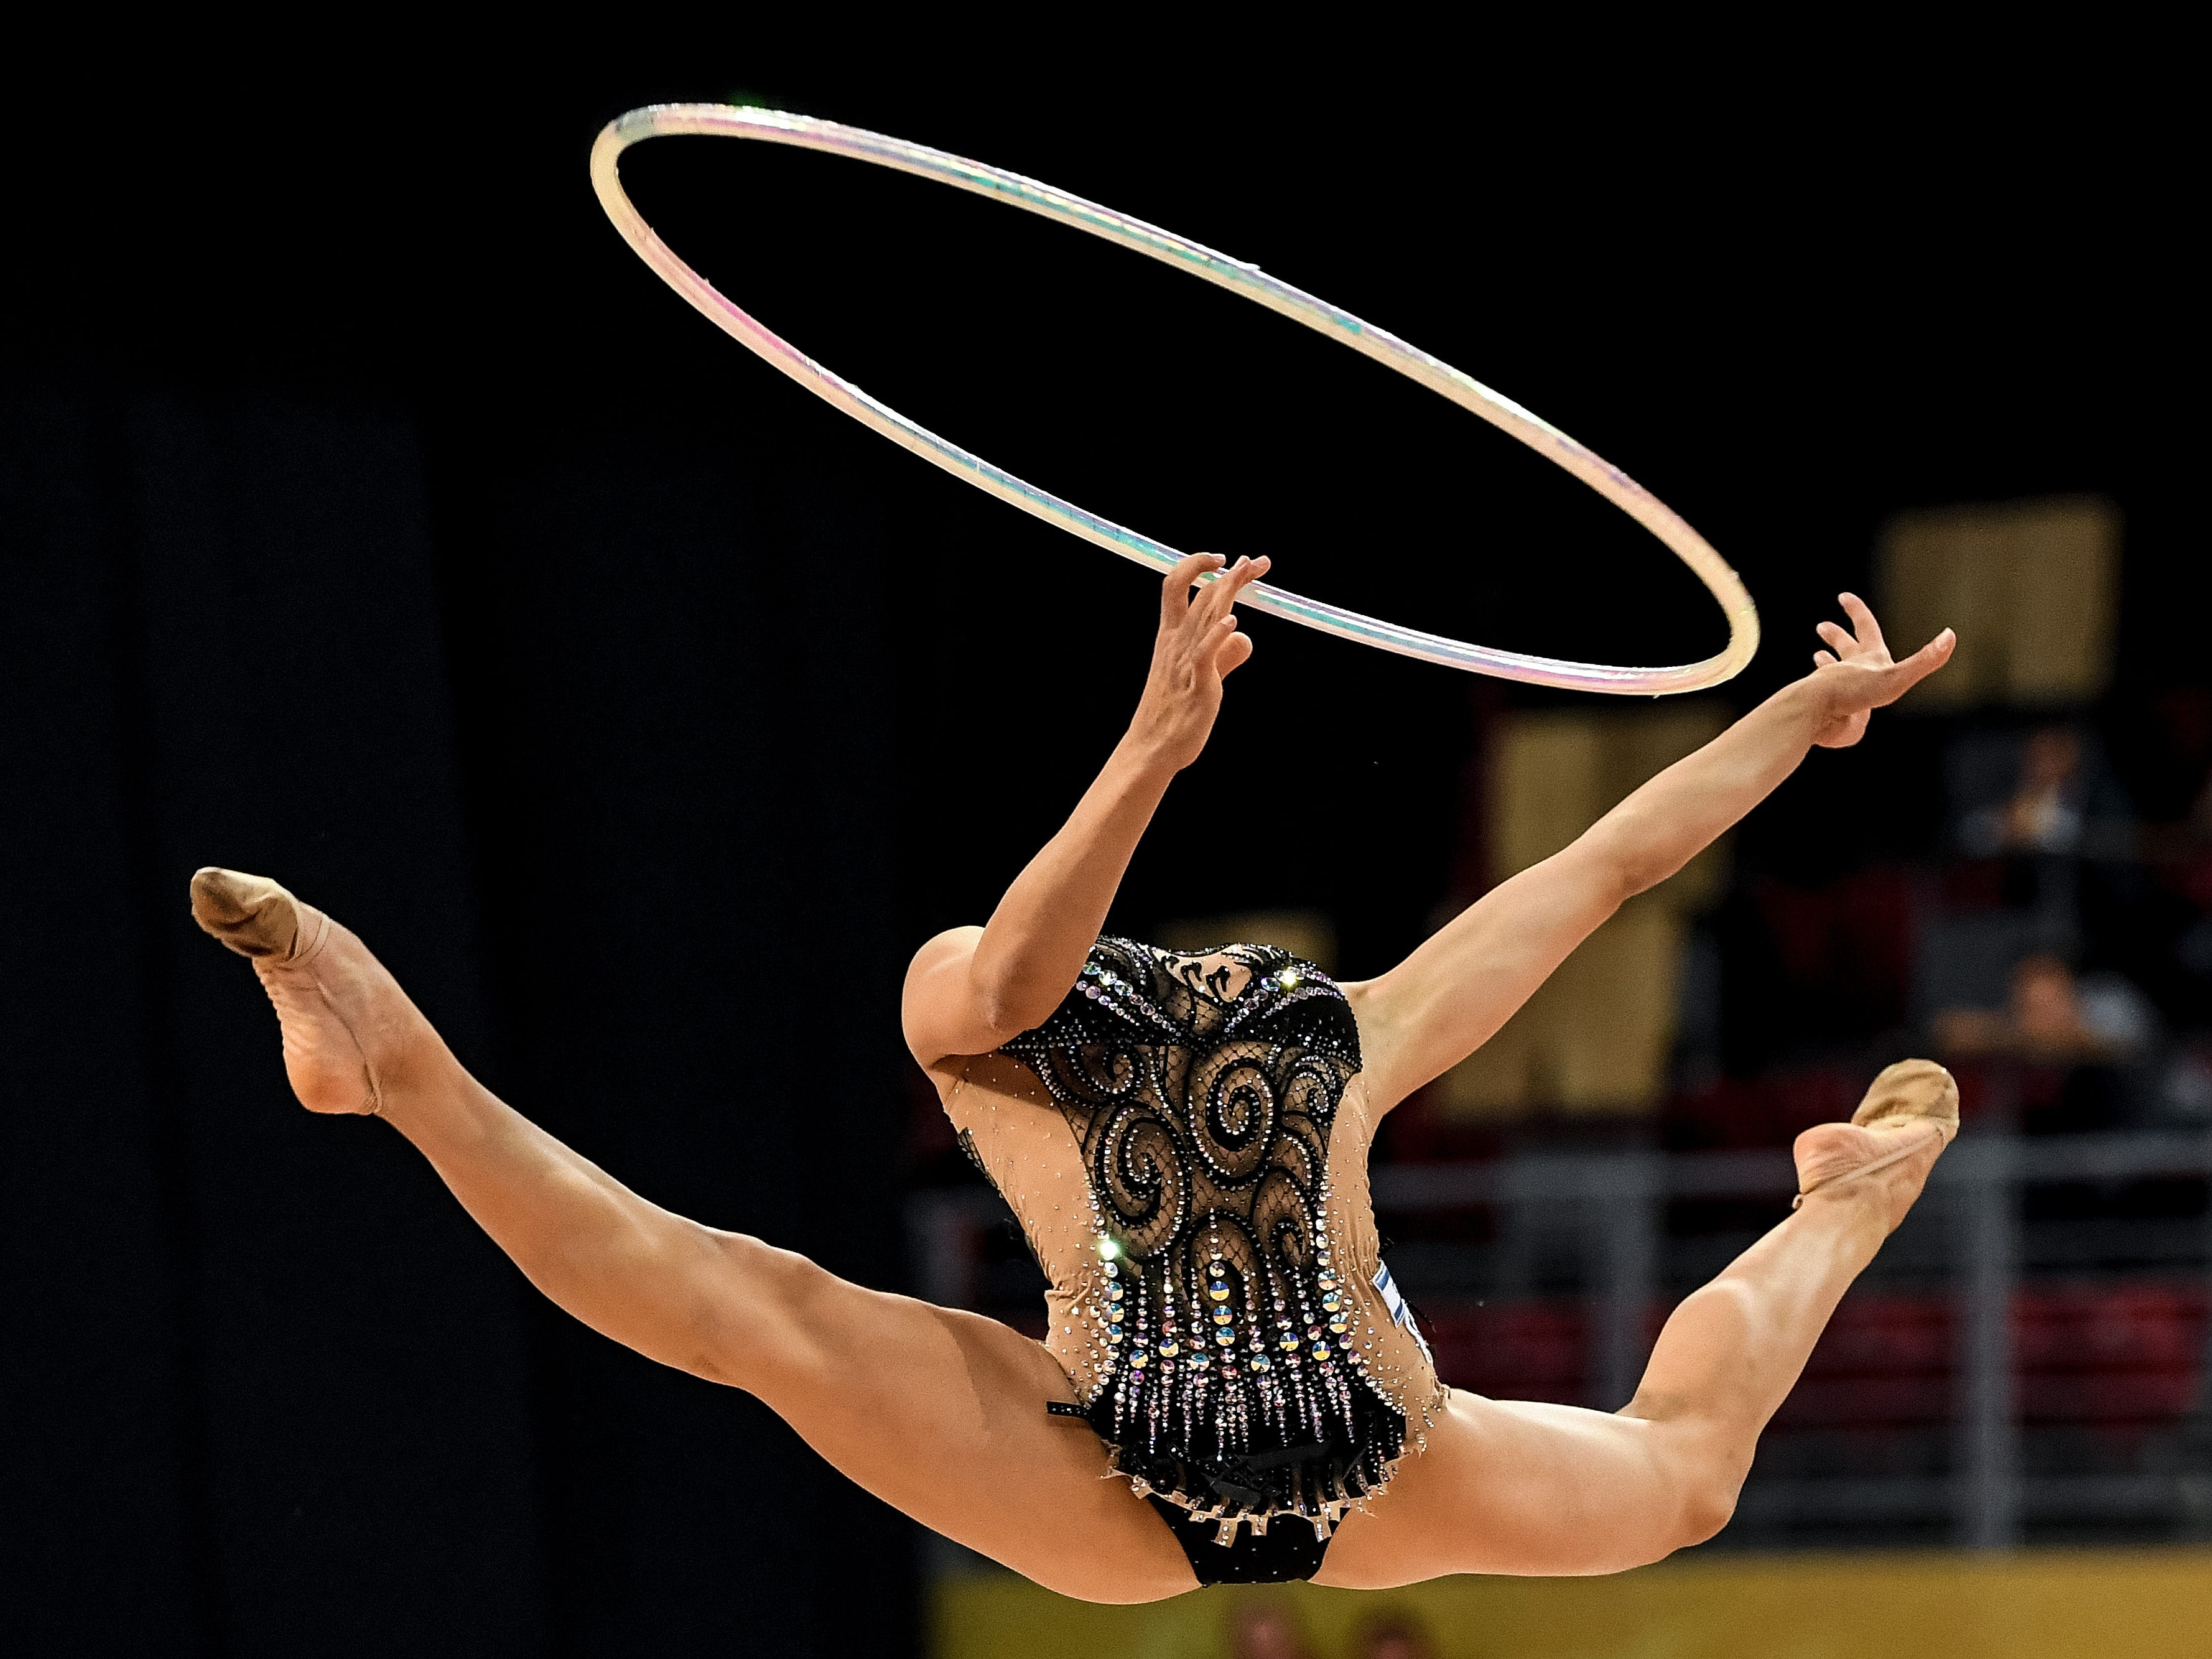 Israel's Ashram Linoy performs during the individual all-around final at the World Rhythmic Gymnastics Championships at Arena Armeec in Sofia on September 14, 2018.